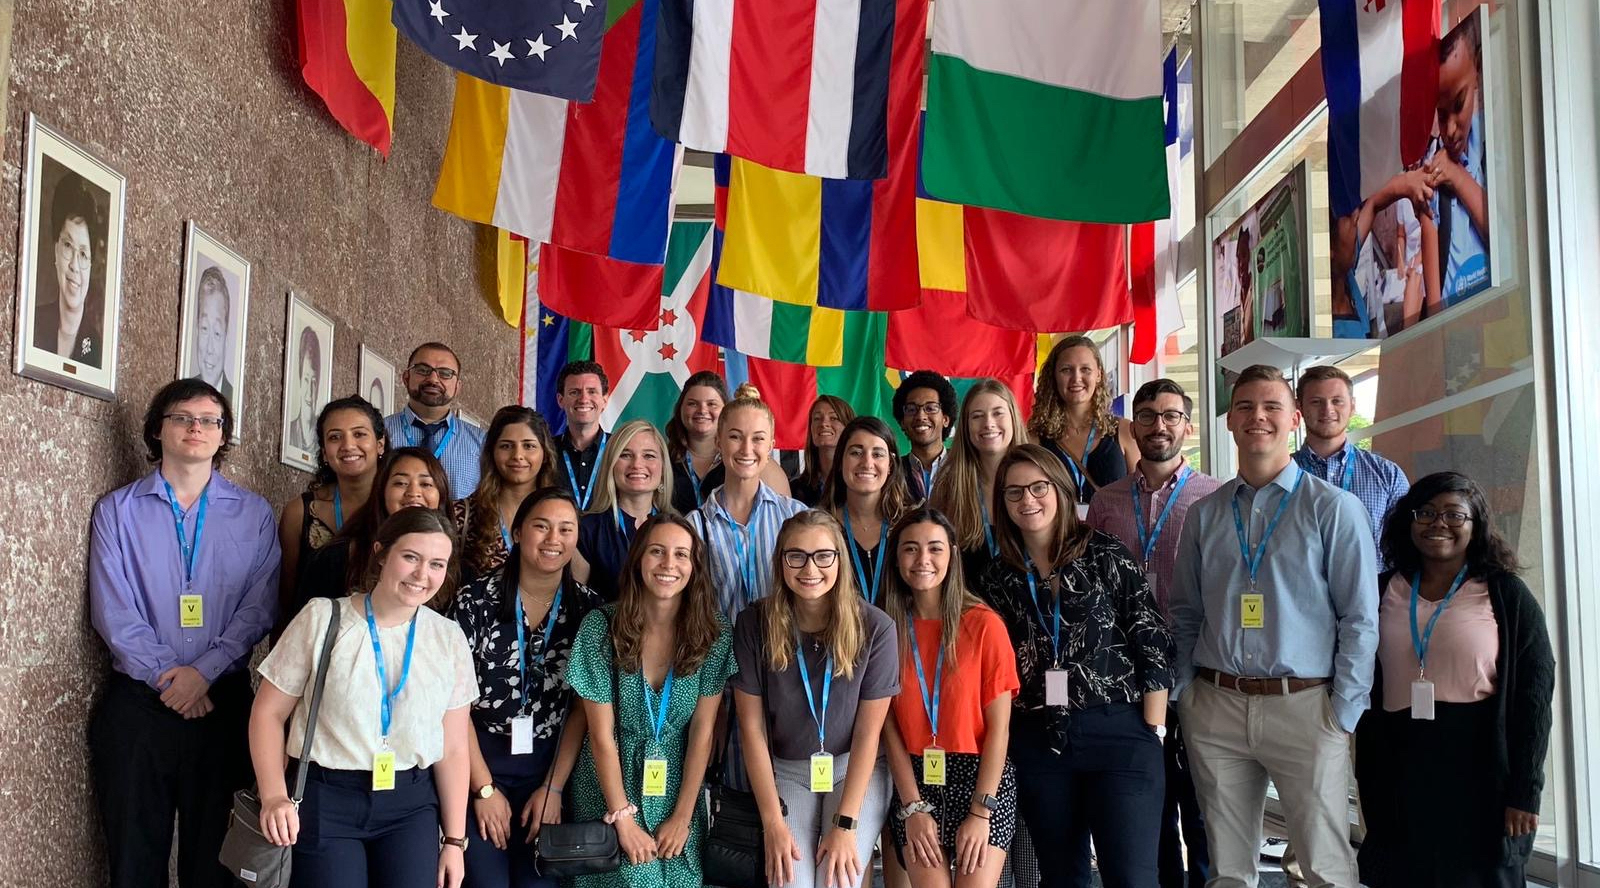 Students and faculty gathered at World Health Organization